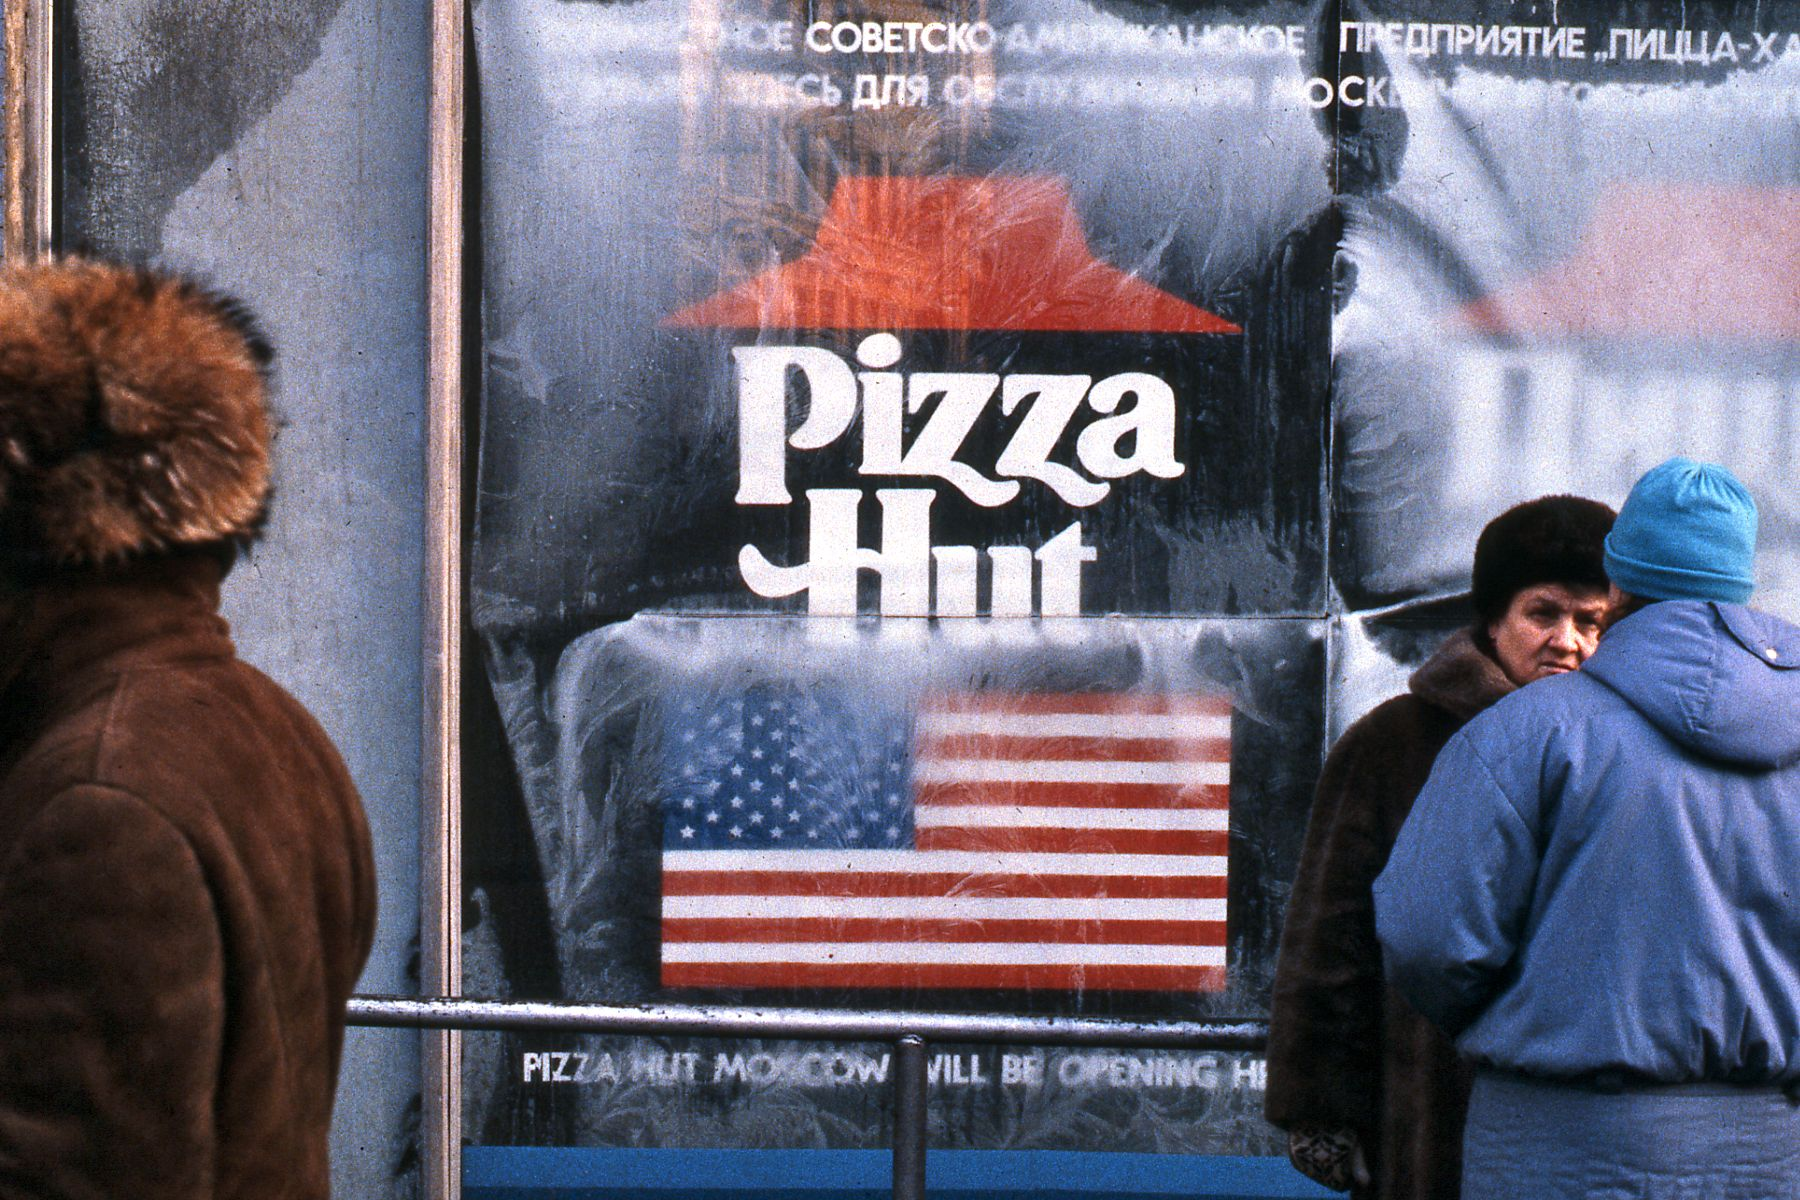 https://upload.wikimedia.org/wikipedia/commons/3/3b/Pizza_Hut_sign_in_Moscow%2C_Russia%2C_just_before_the_store_opened%2C_1990.jpg